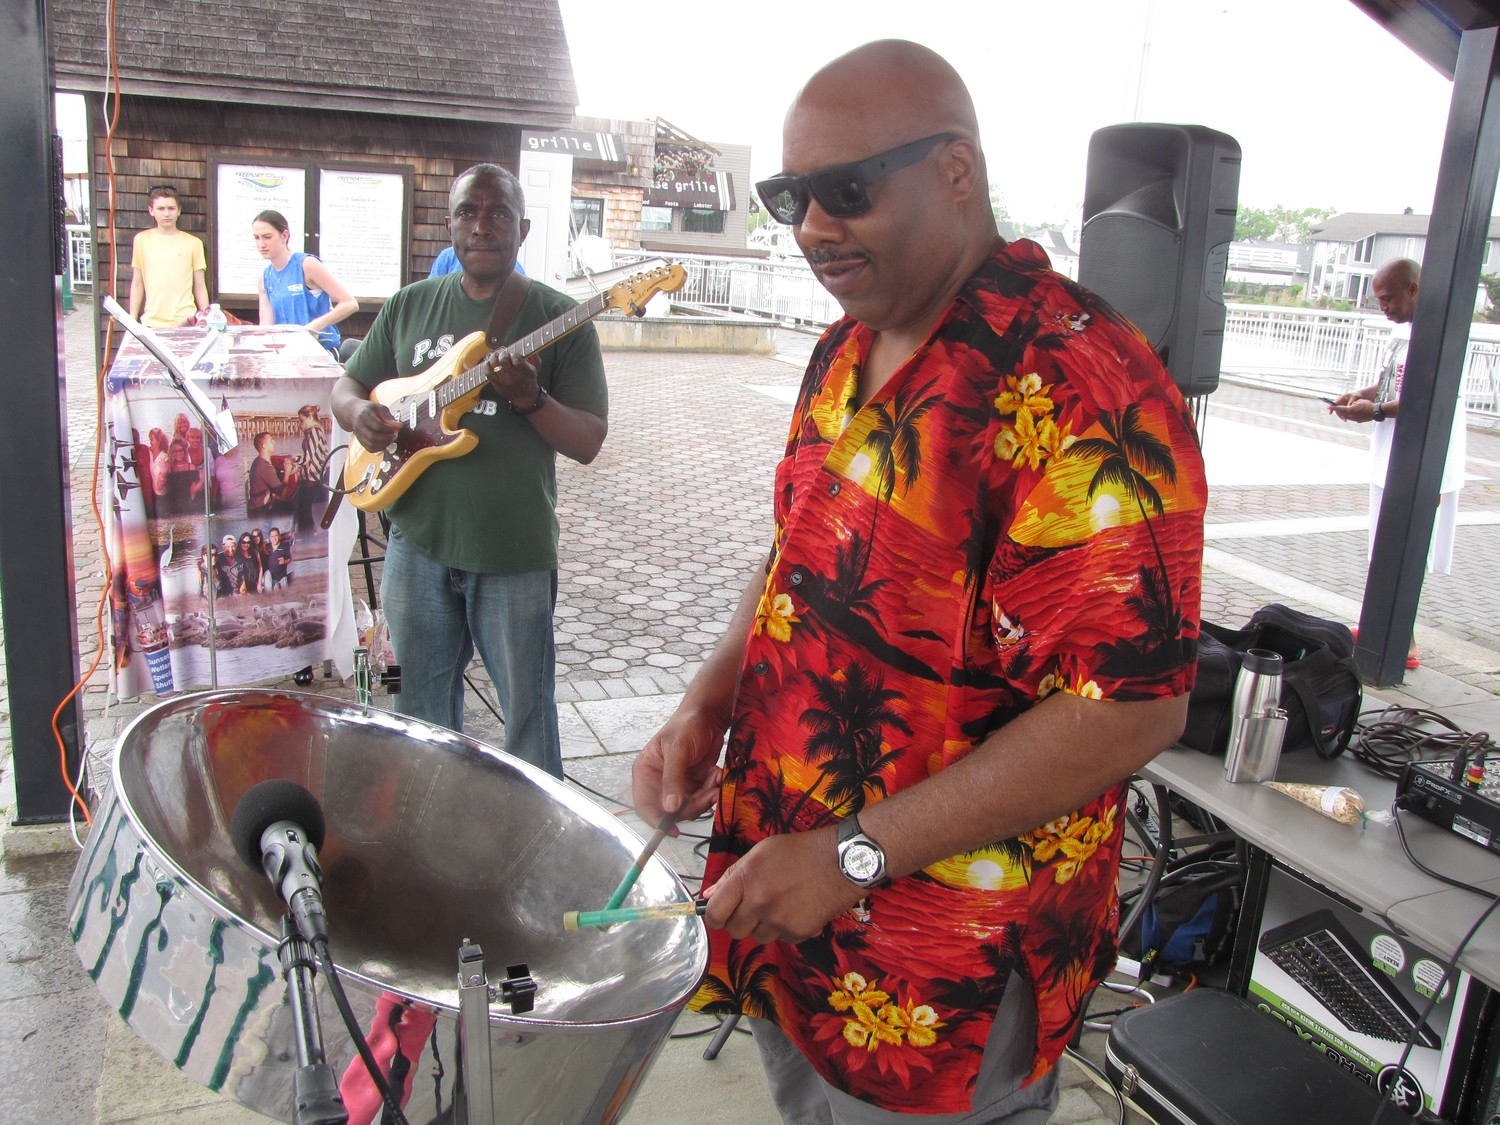 The steel drum band Ricardo and Friends performed under the Esplanade on the Nautical Mile.